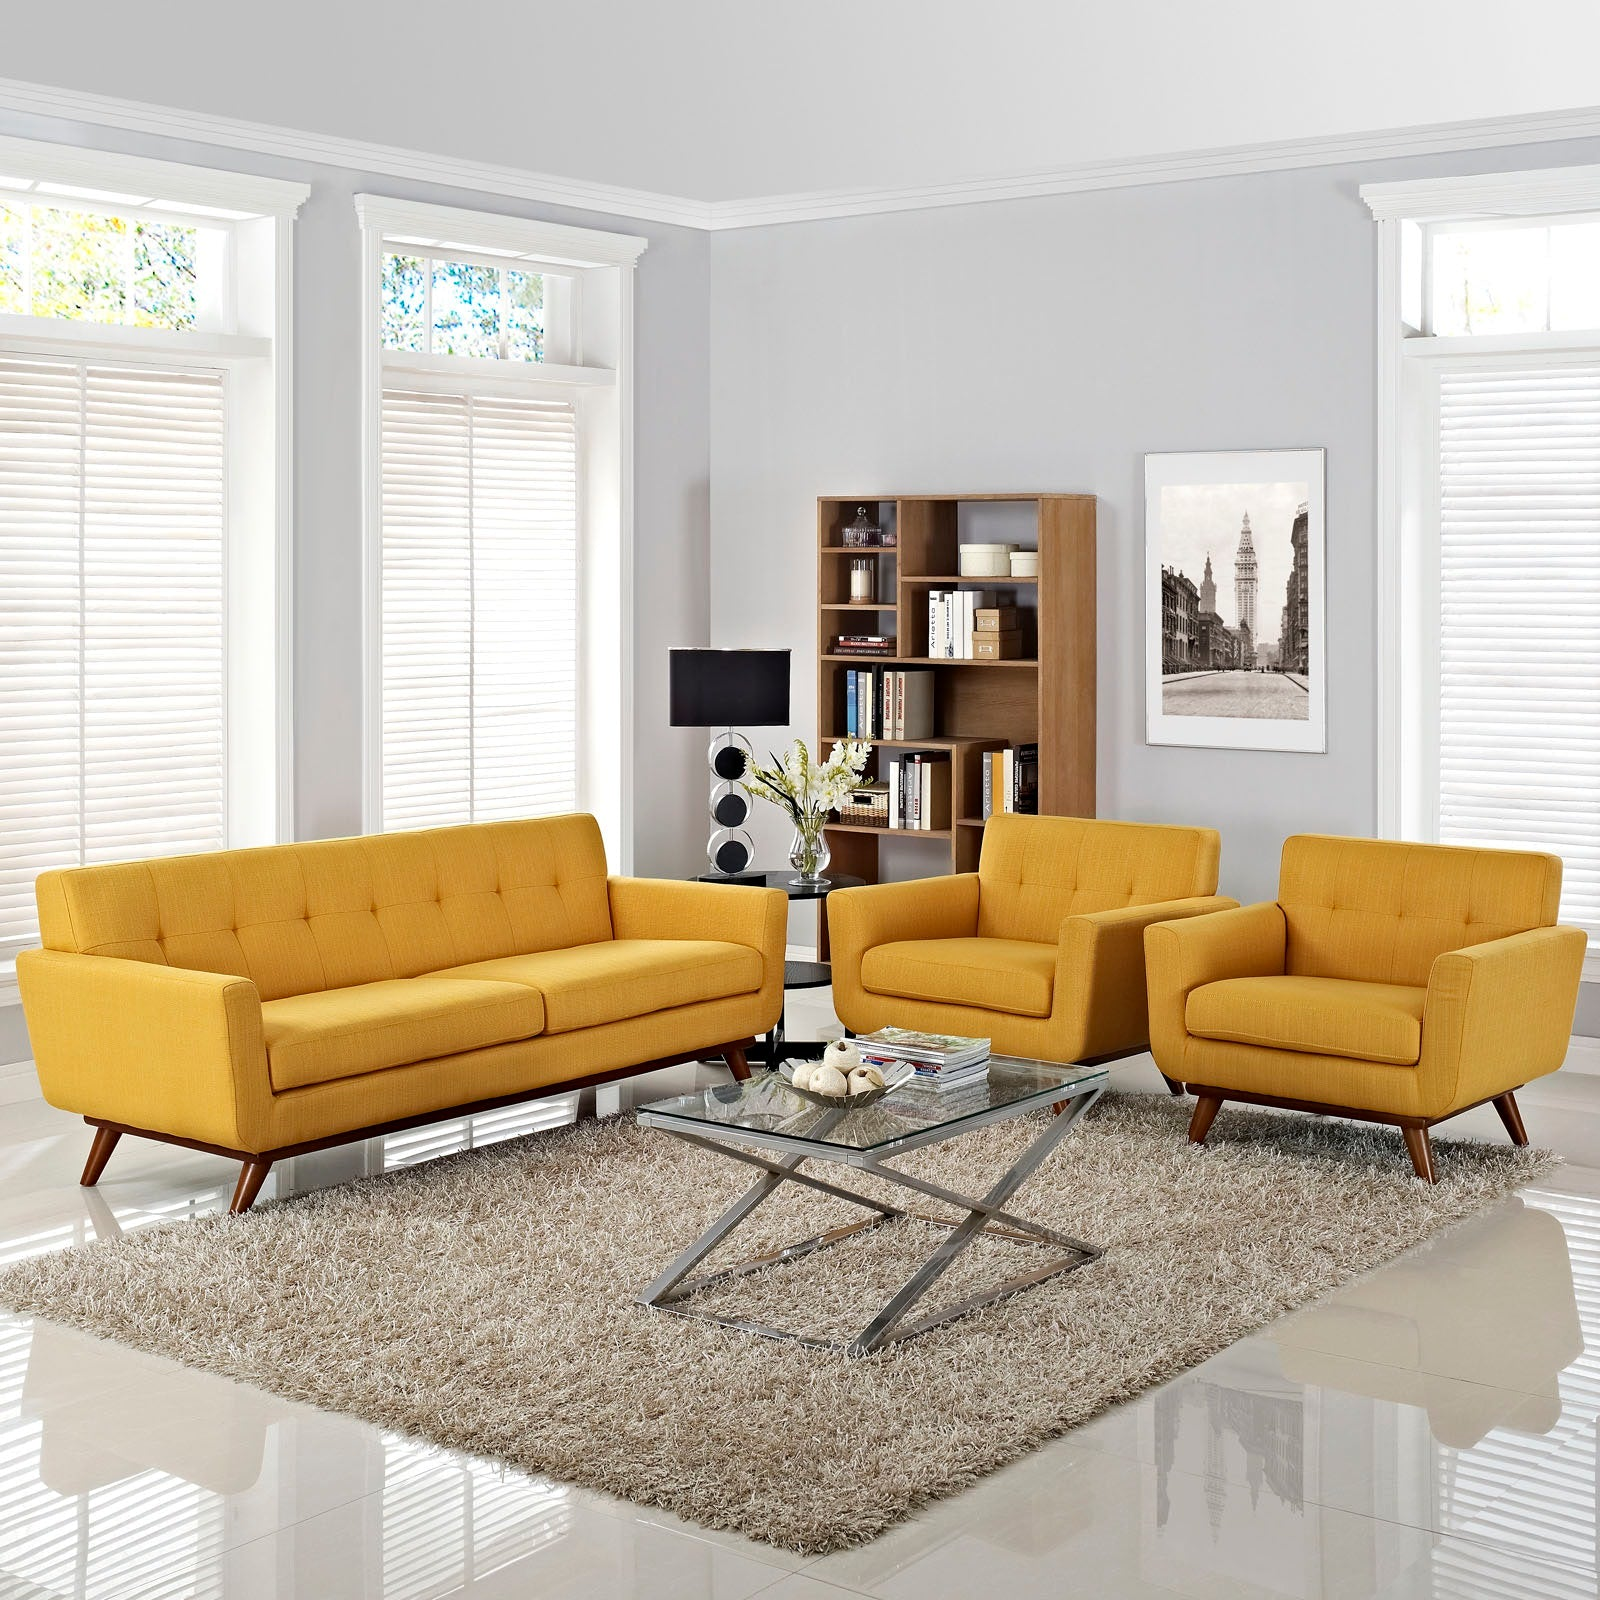 Engage Armchairs and Sofa Set of 3 - Citrus